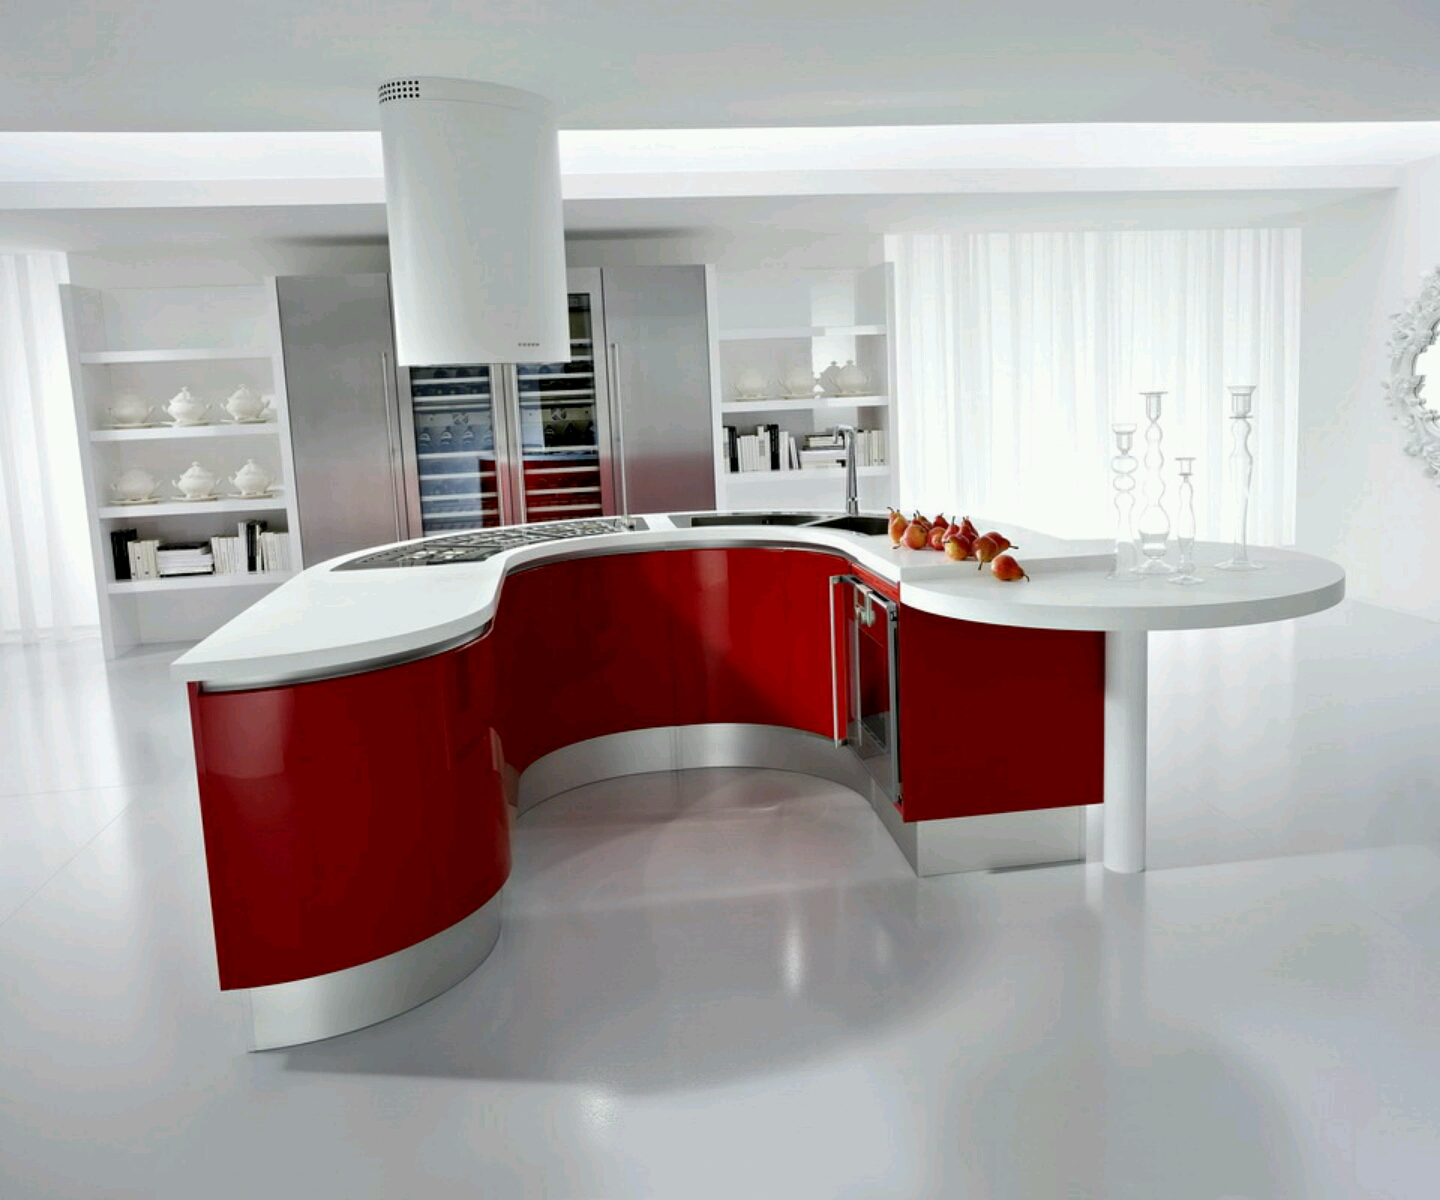 Modern kitchen cabinets designs ideas furniture gallery for New kitchen ideas